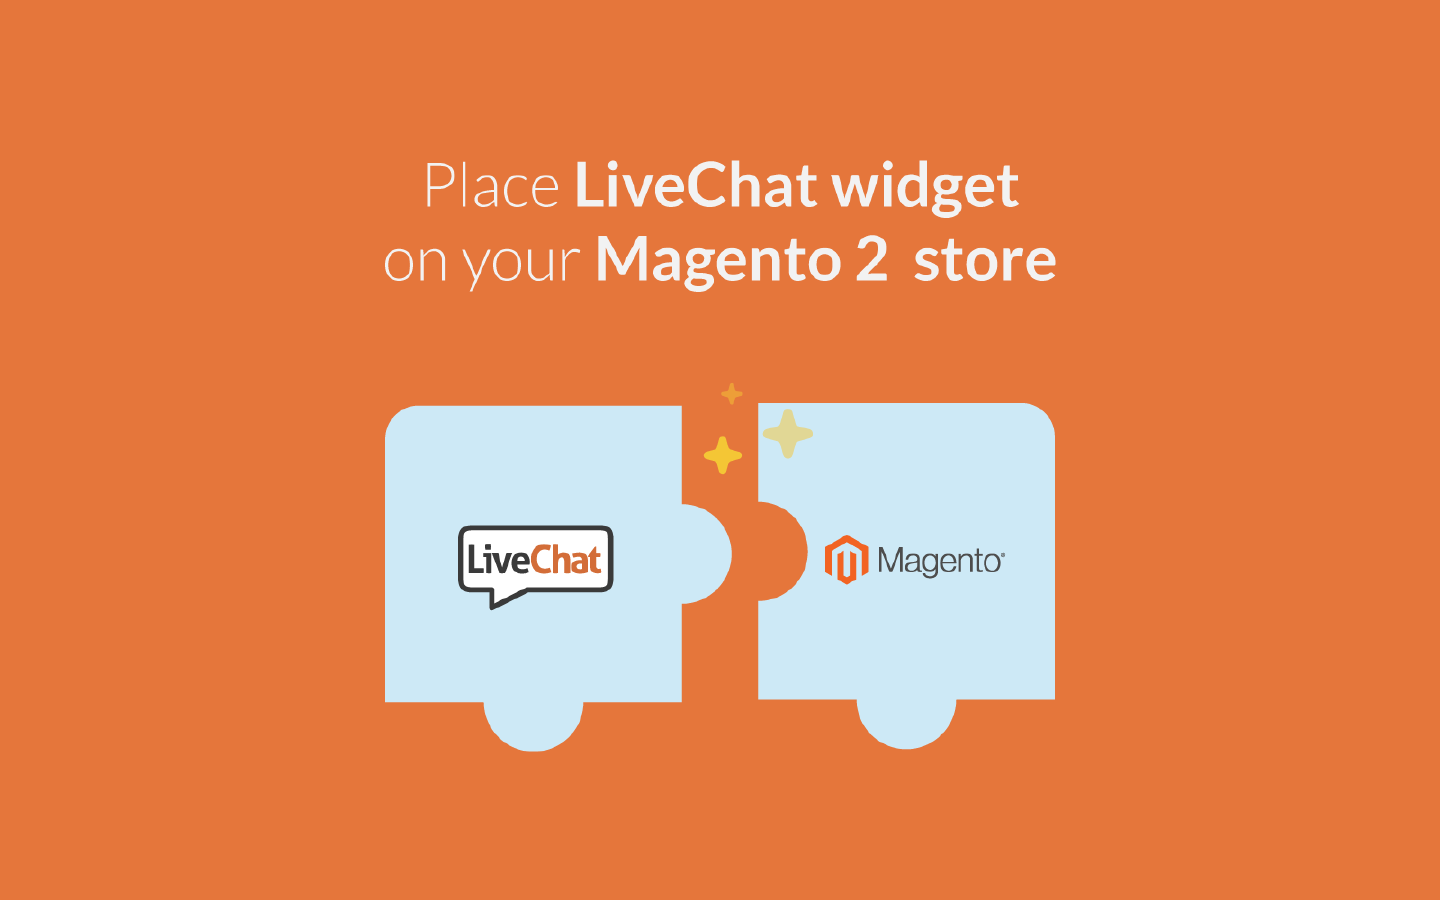 LiveChat integrates with Magento v. 2